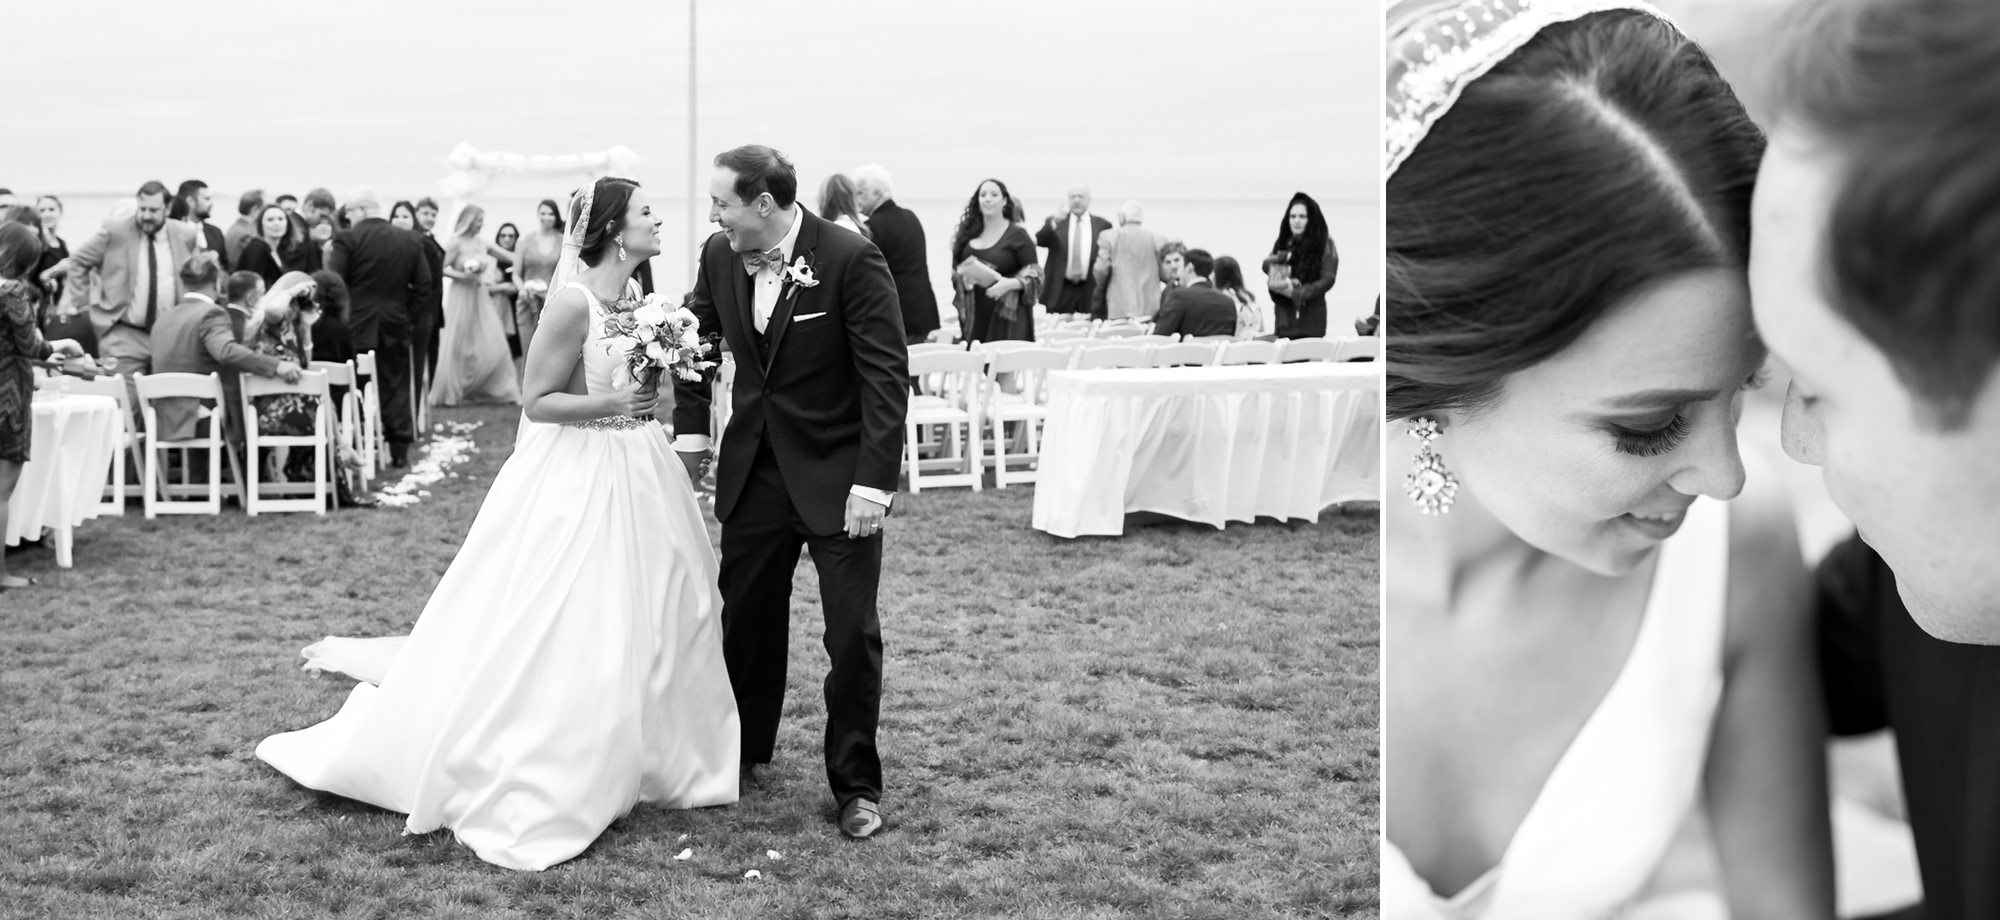 Best of 2016 | Westbrook, CT Wedding at The Water's Edge Resort + Spa | CT, NYC, New England + Destination Luxury Wedding + Engagement Photographer | Shaina Lee Photography